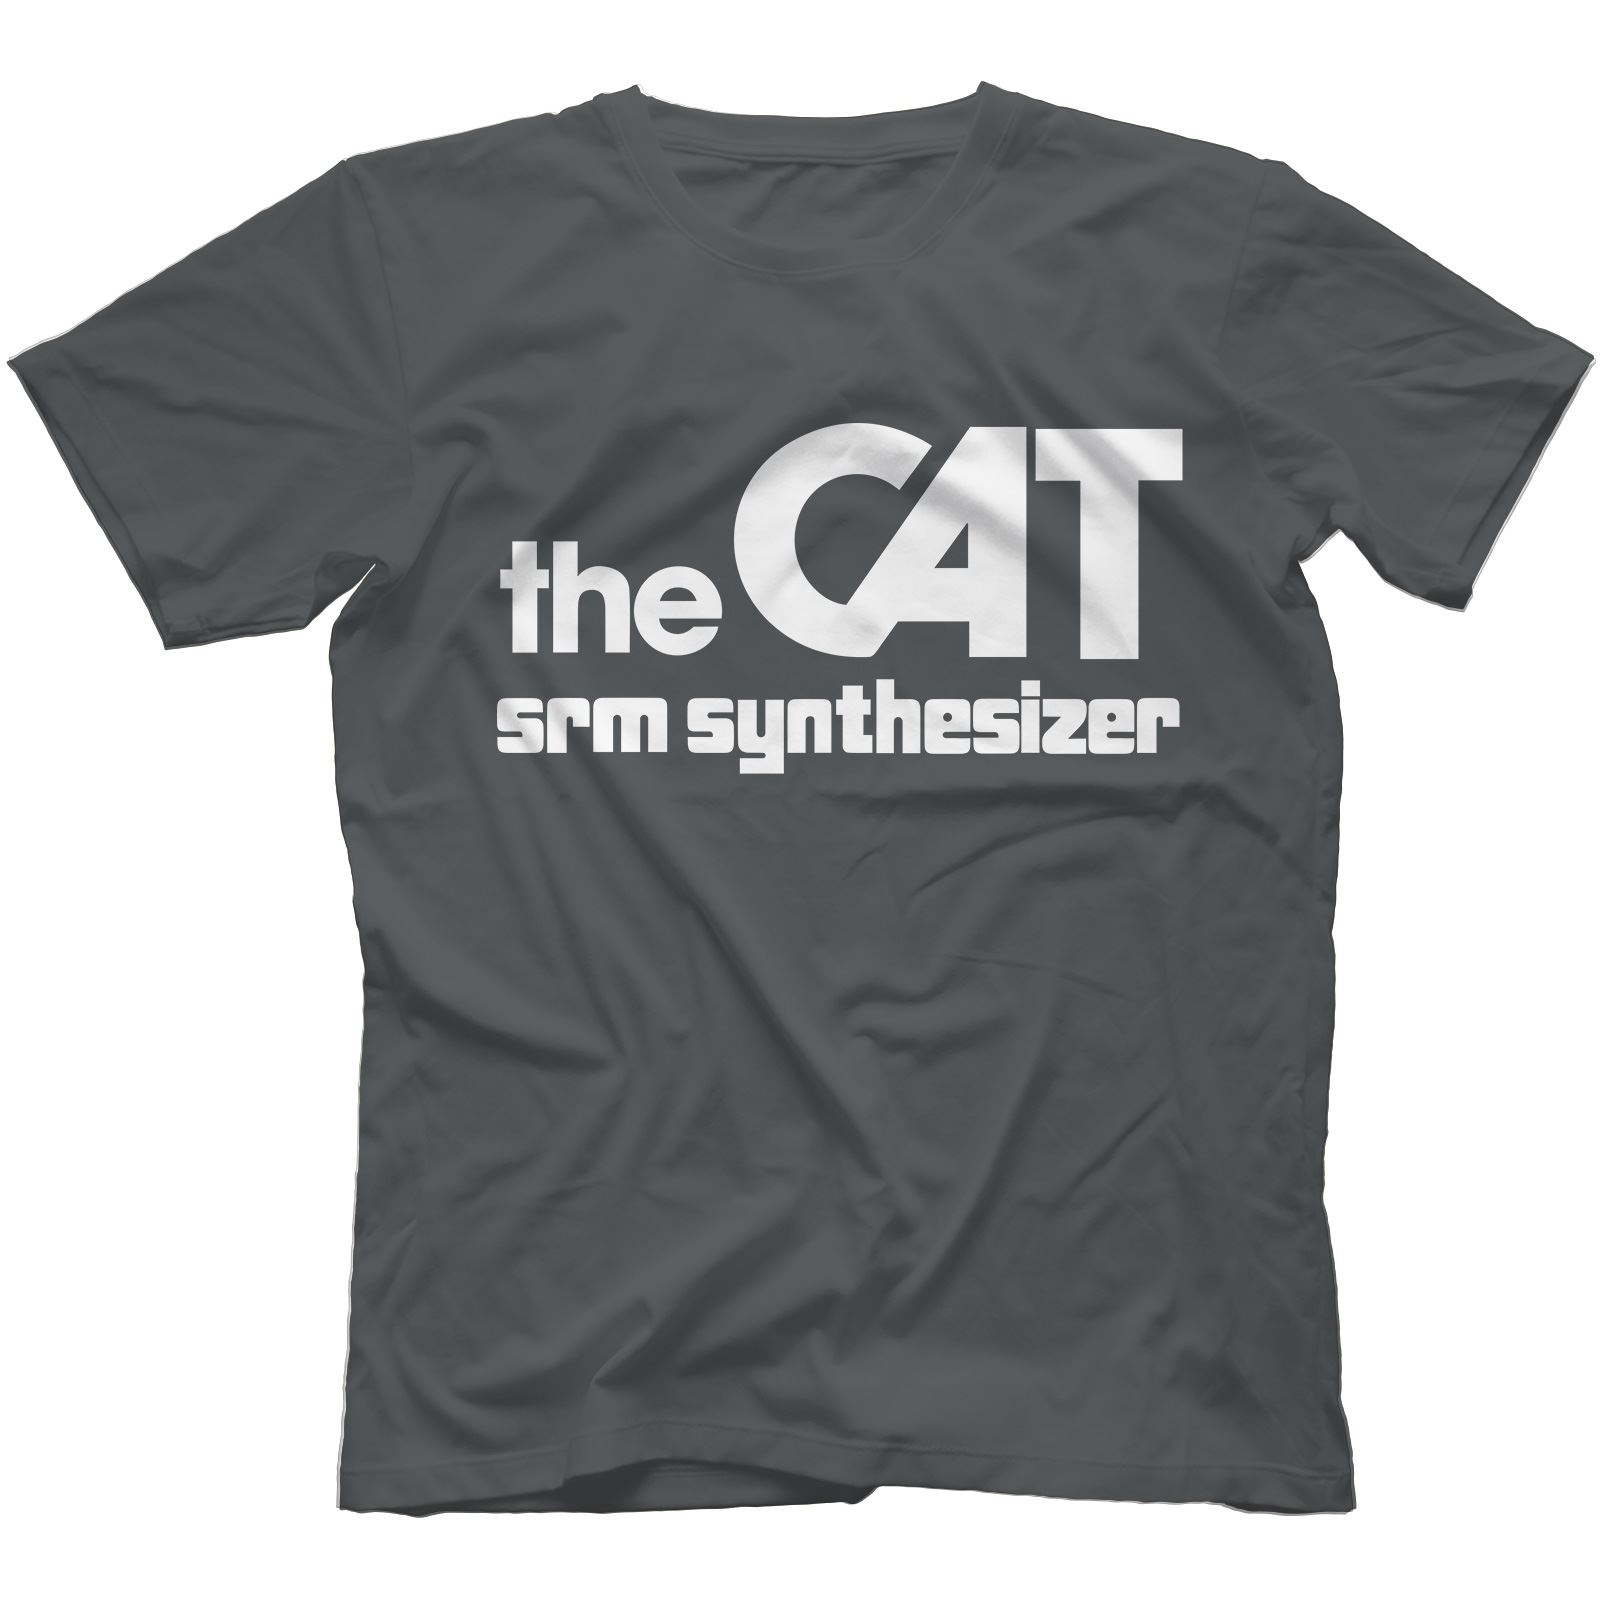 The-Cat-SRM-Synthesiser-T-Shirt-100-Cotton-Retro-Analog-Arp-Odyssey Indexbild 12